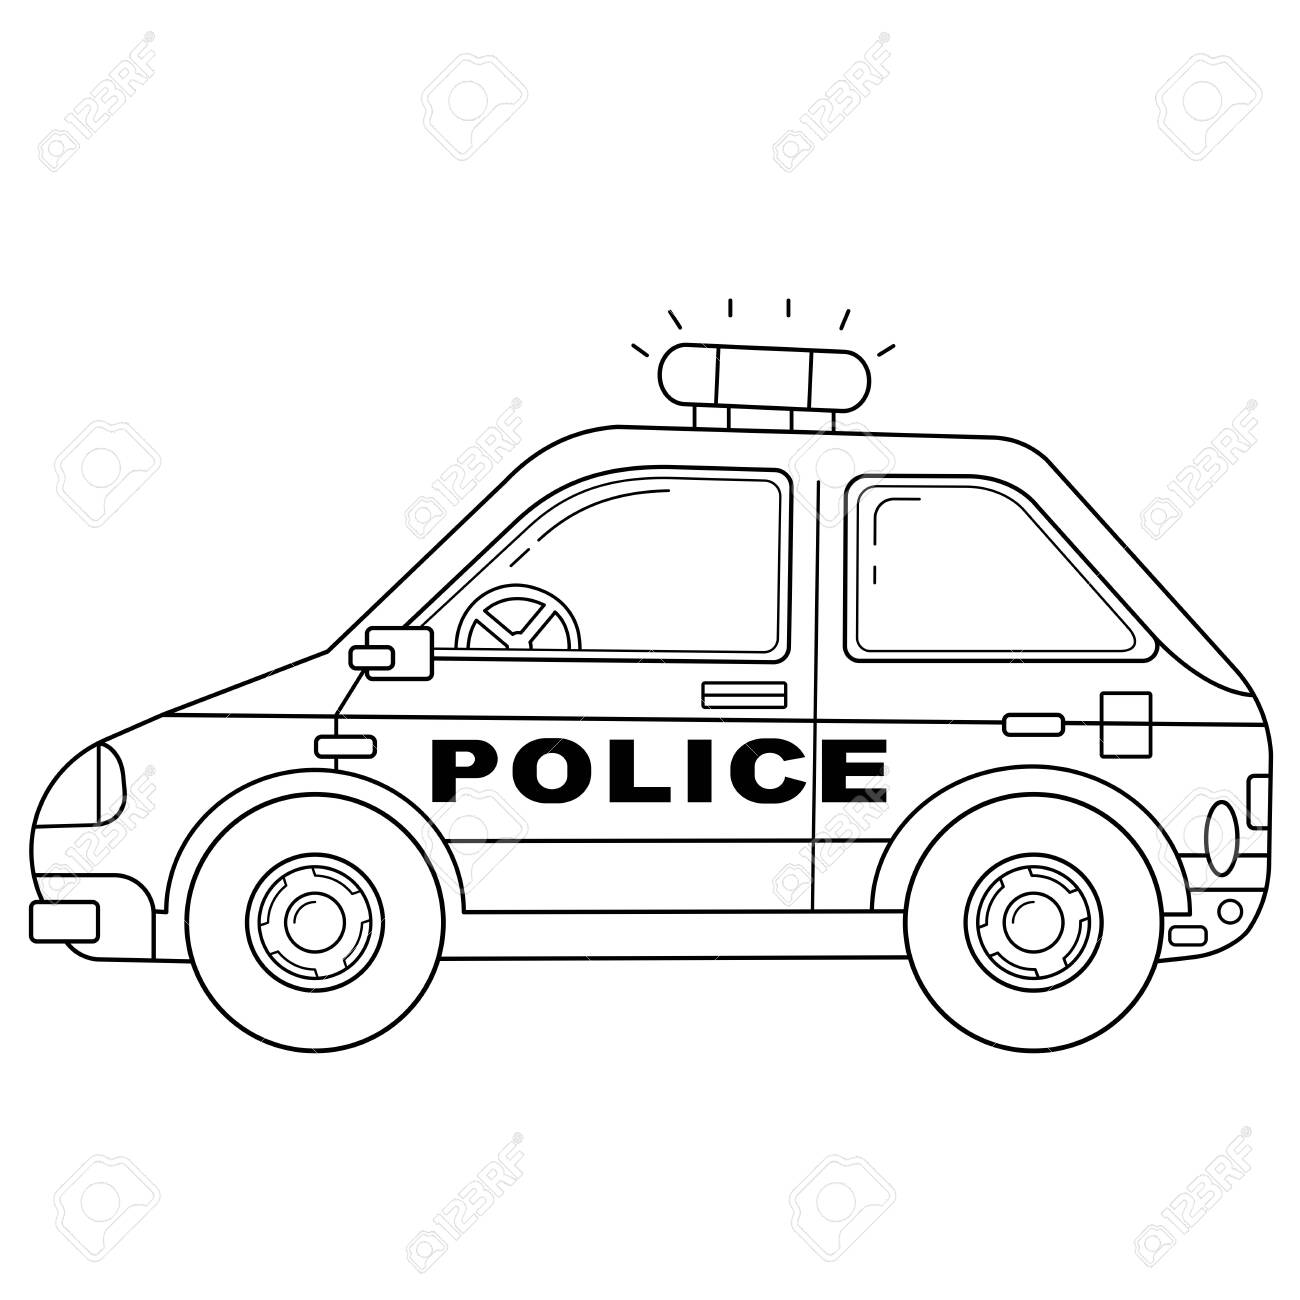 Coloring Page Outline Of Cartoon Police Car Police Images Transport Royalty Free Cliparts Vectors And Stock Illustration Image 133541240